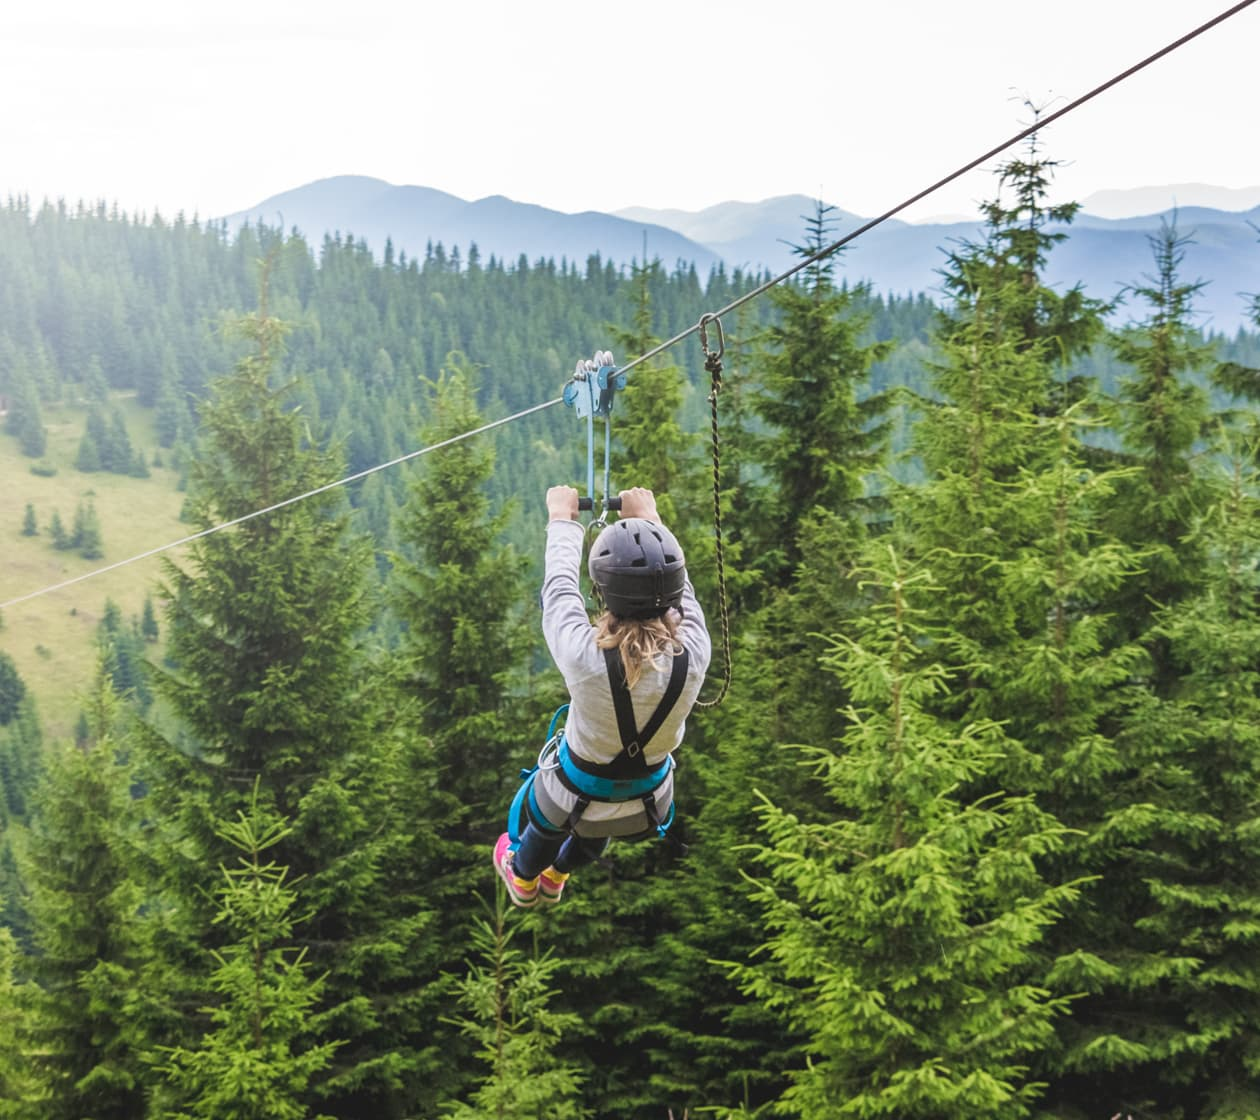 Woman on a zipline with a pine forest in the background